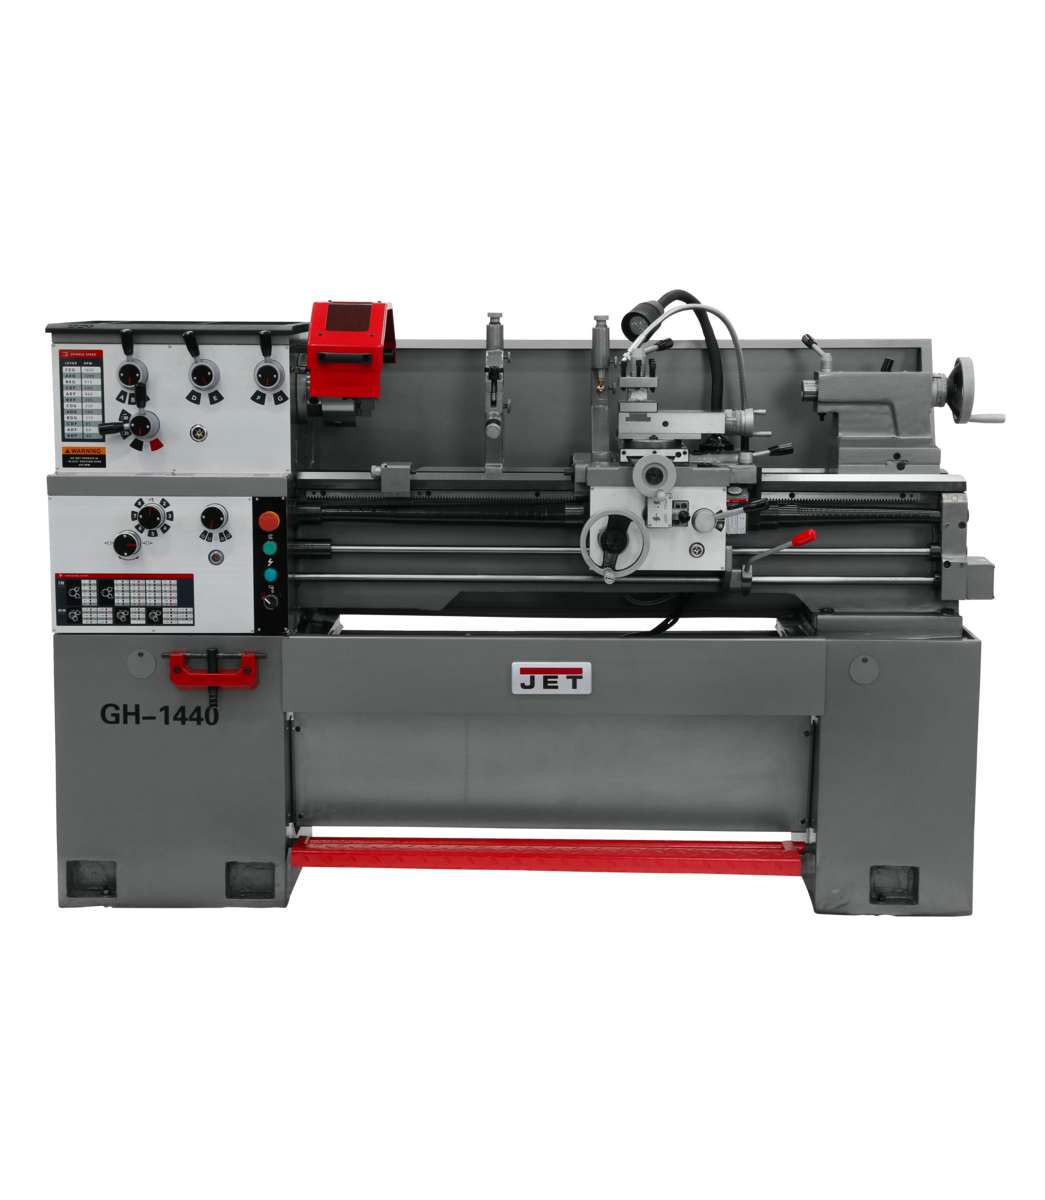 GH-1440-3 Lathe with Newall DP700 DRO and Taper Attachment